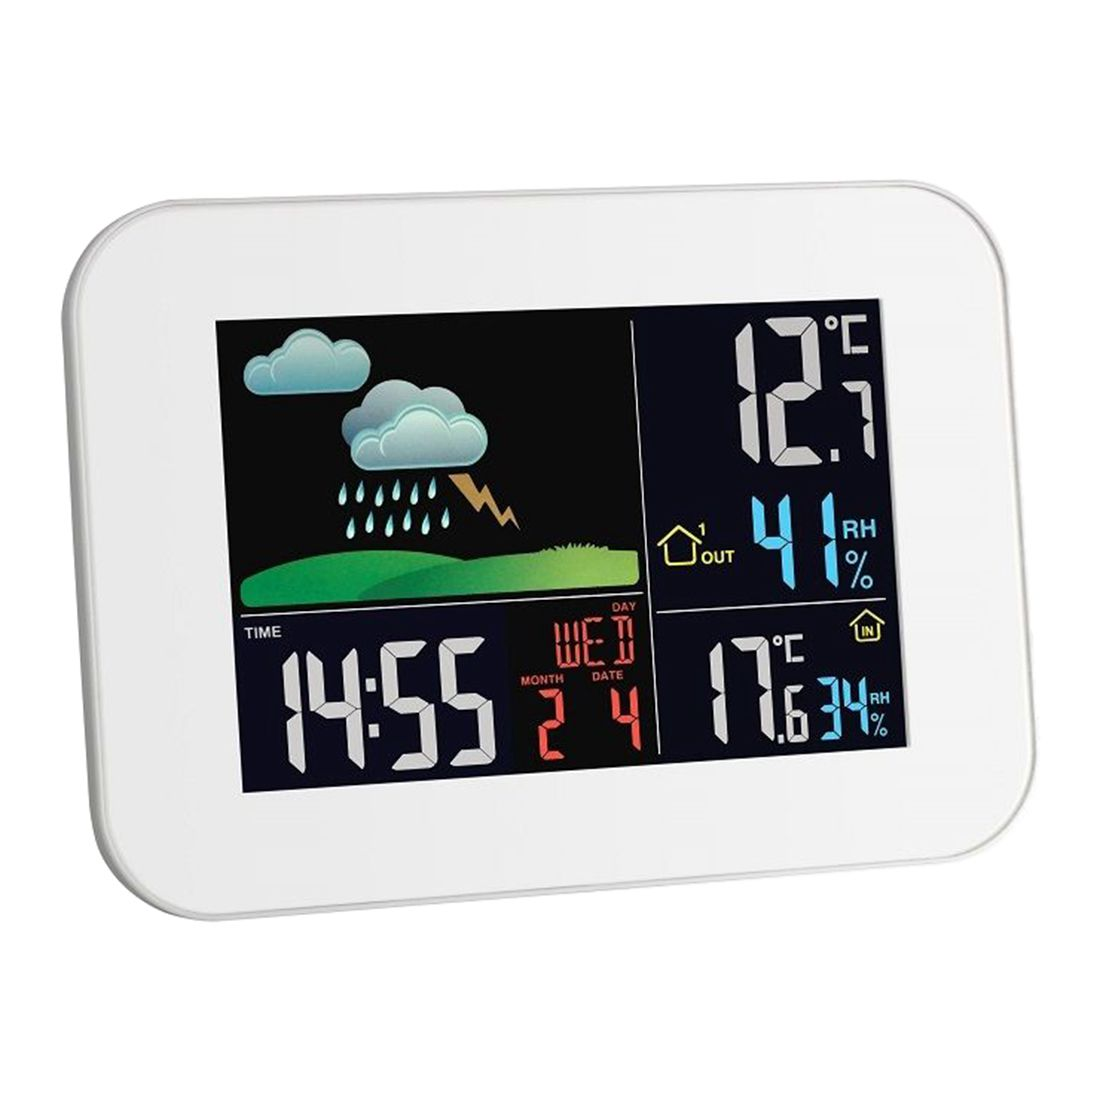 JFBL Hot Wireless weather station Weather forecast Thermometer Hygrometer Indoor climate,white wireless weather station indoor hygrometer indoor